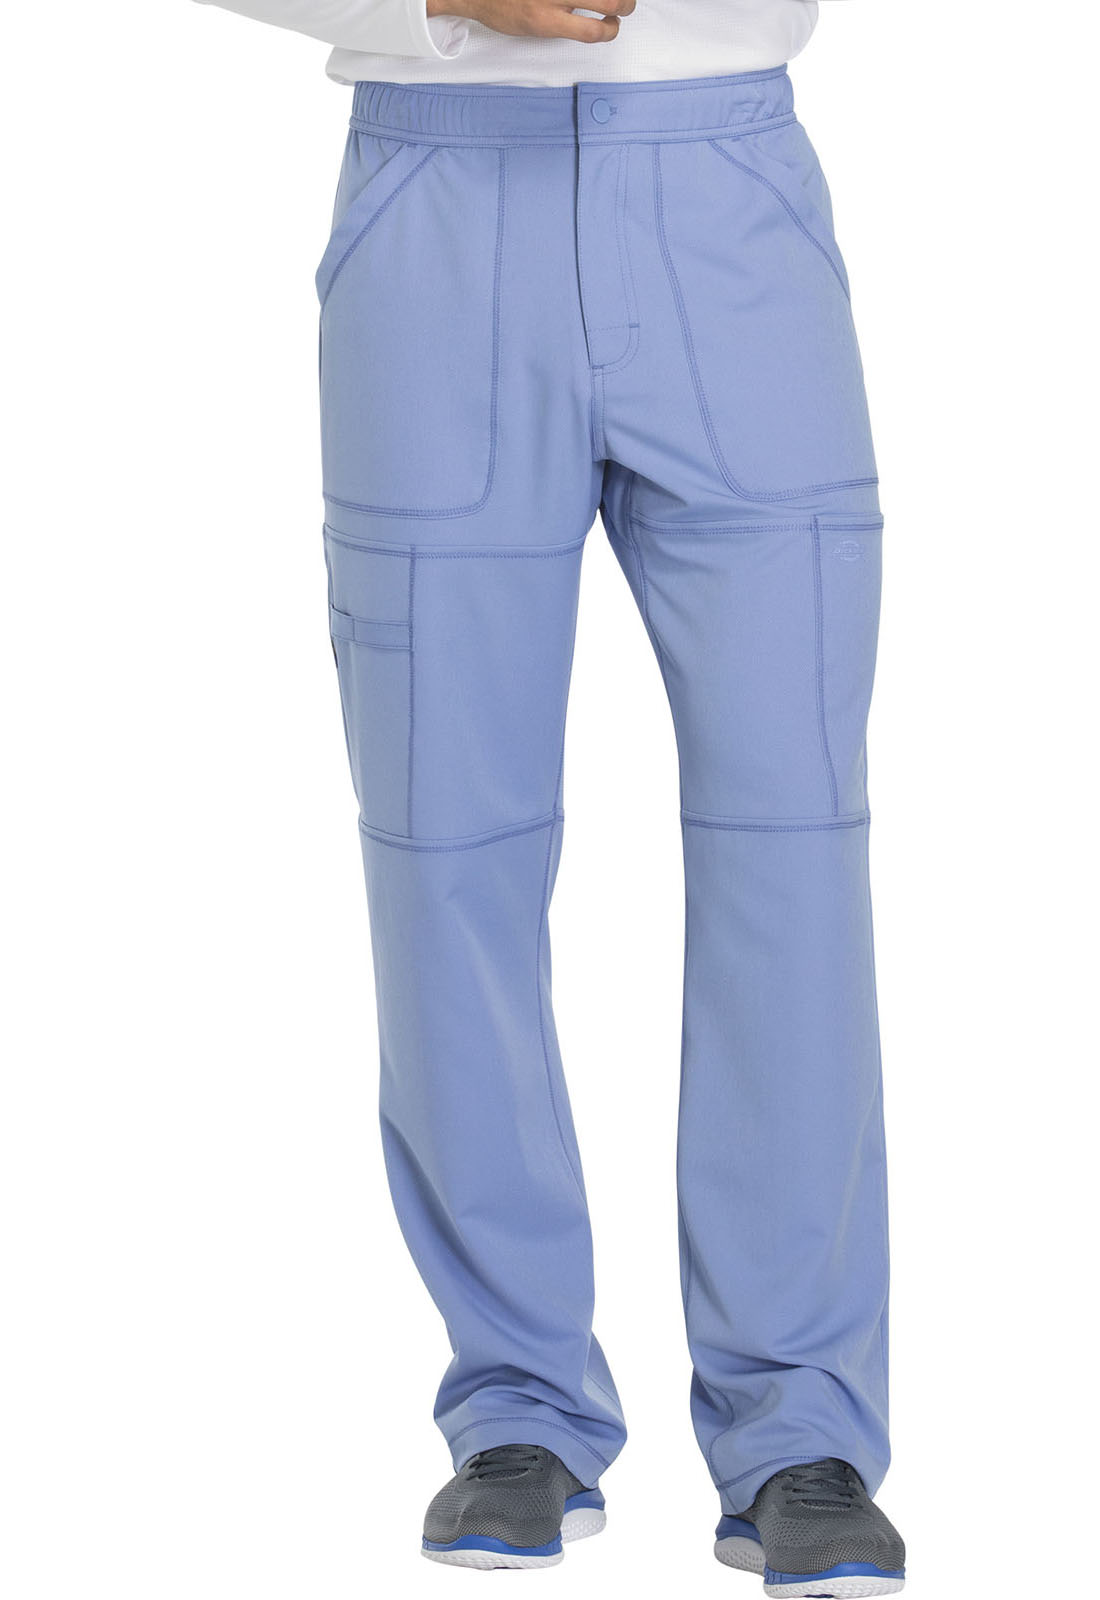 bd47f4d172c Dickies Dynamix Men's Zip Fly Cargo Pant in Ciel Blue from Dickies ...